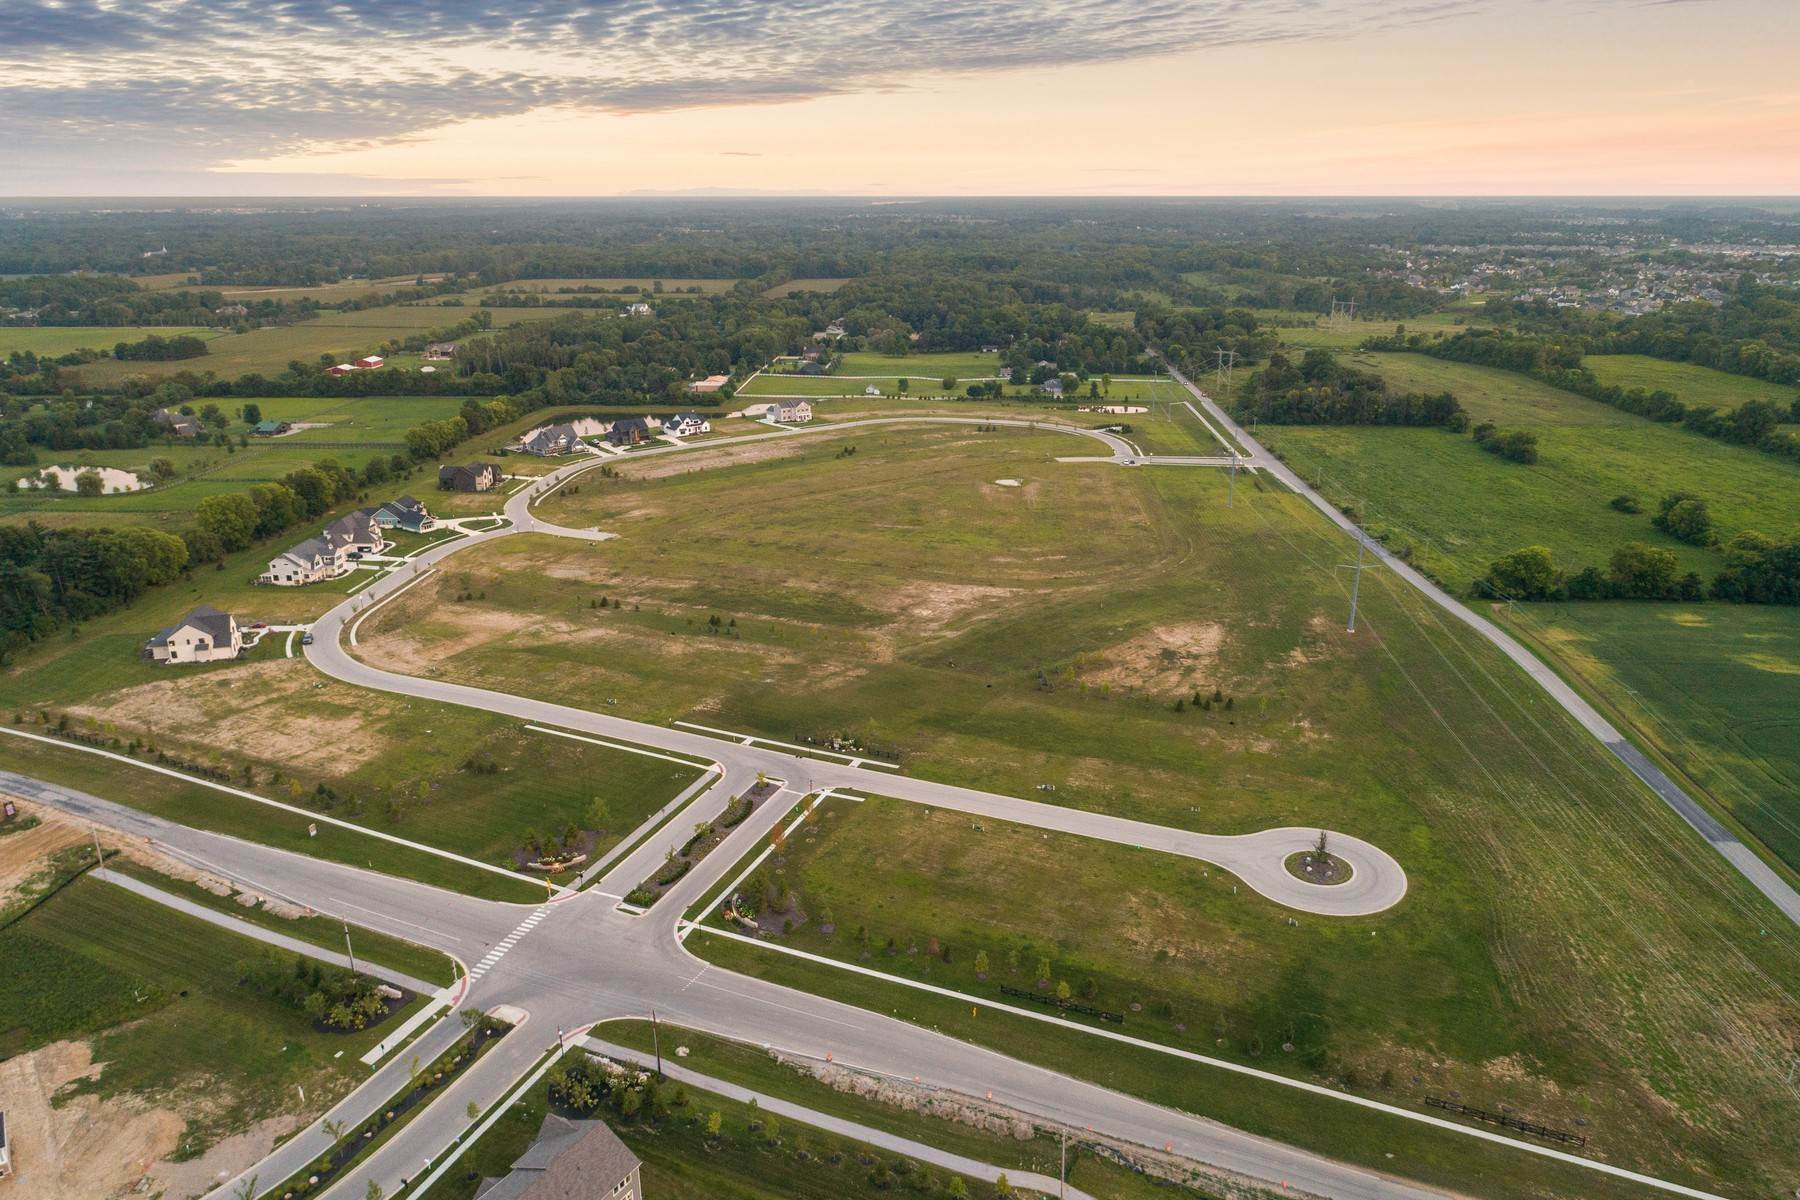 4. Land for Sale at New Zionsville's Development - Pemberton 8080 Totton Court Zionsville, Indiana 46077 United States